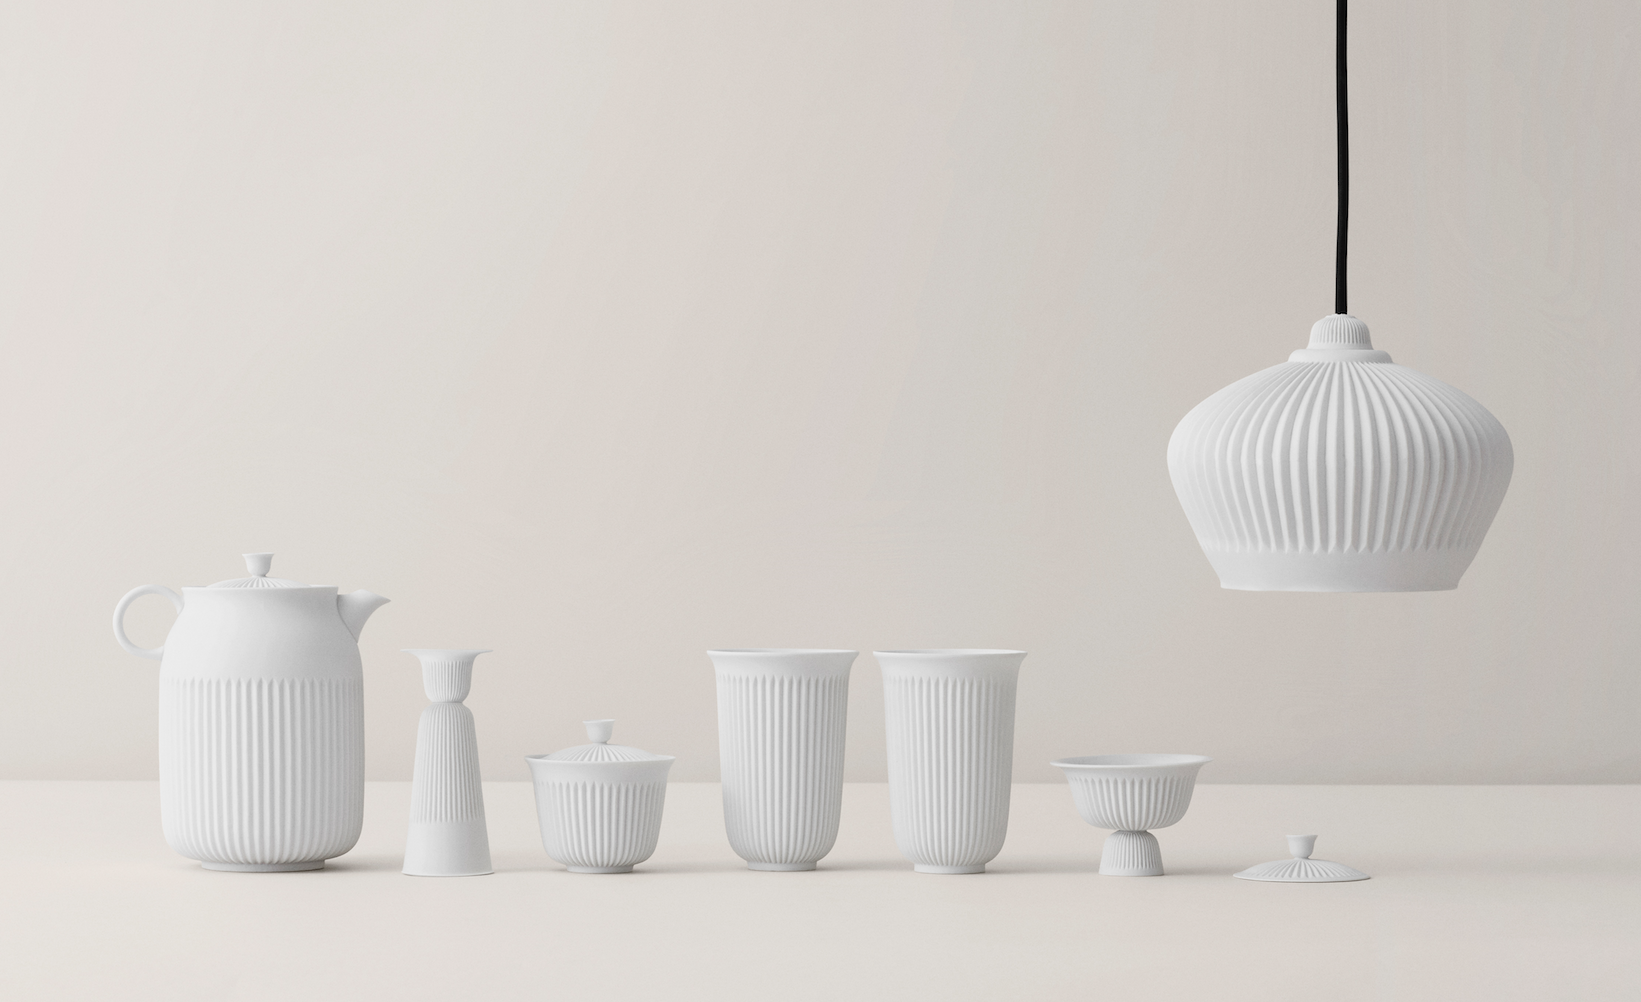 The Tsé set by Lyngby Porcelain, designed in collaboration with the Taiwanese designer Pili Wu and the Taiwanese Han Gallery.